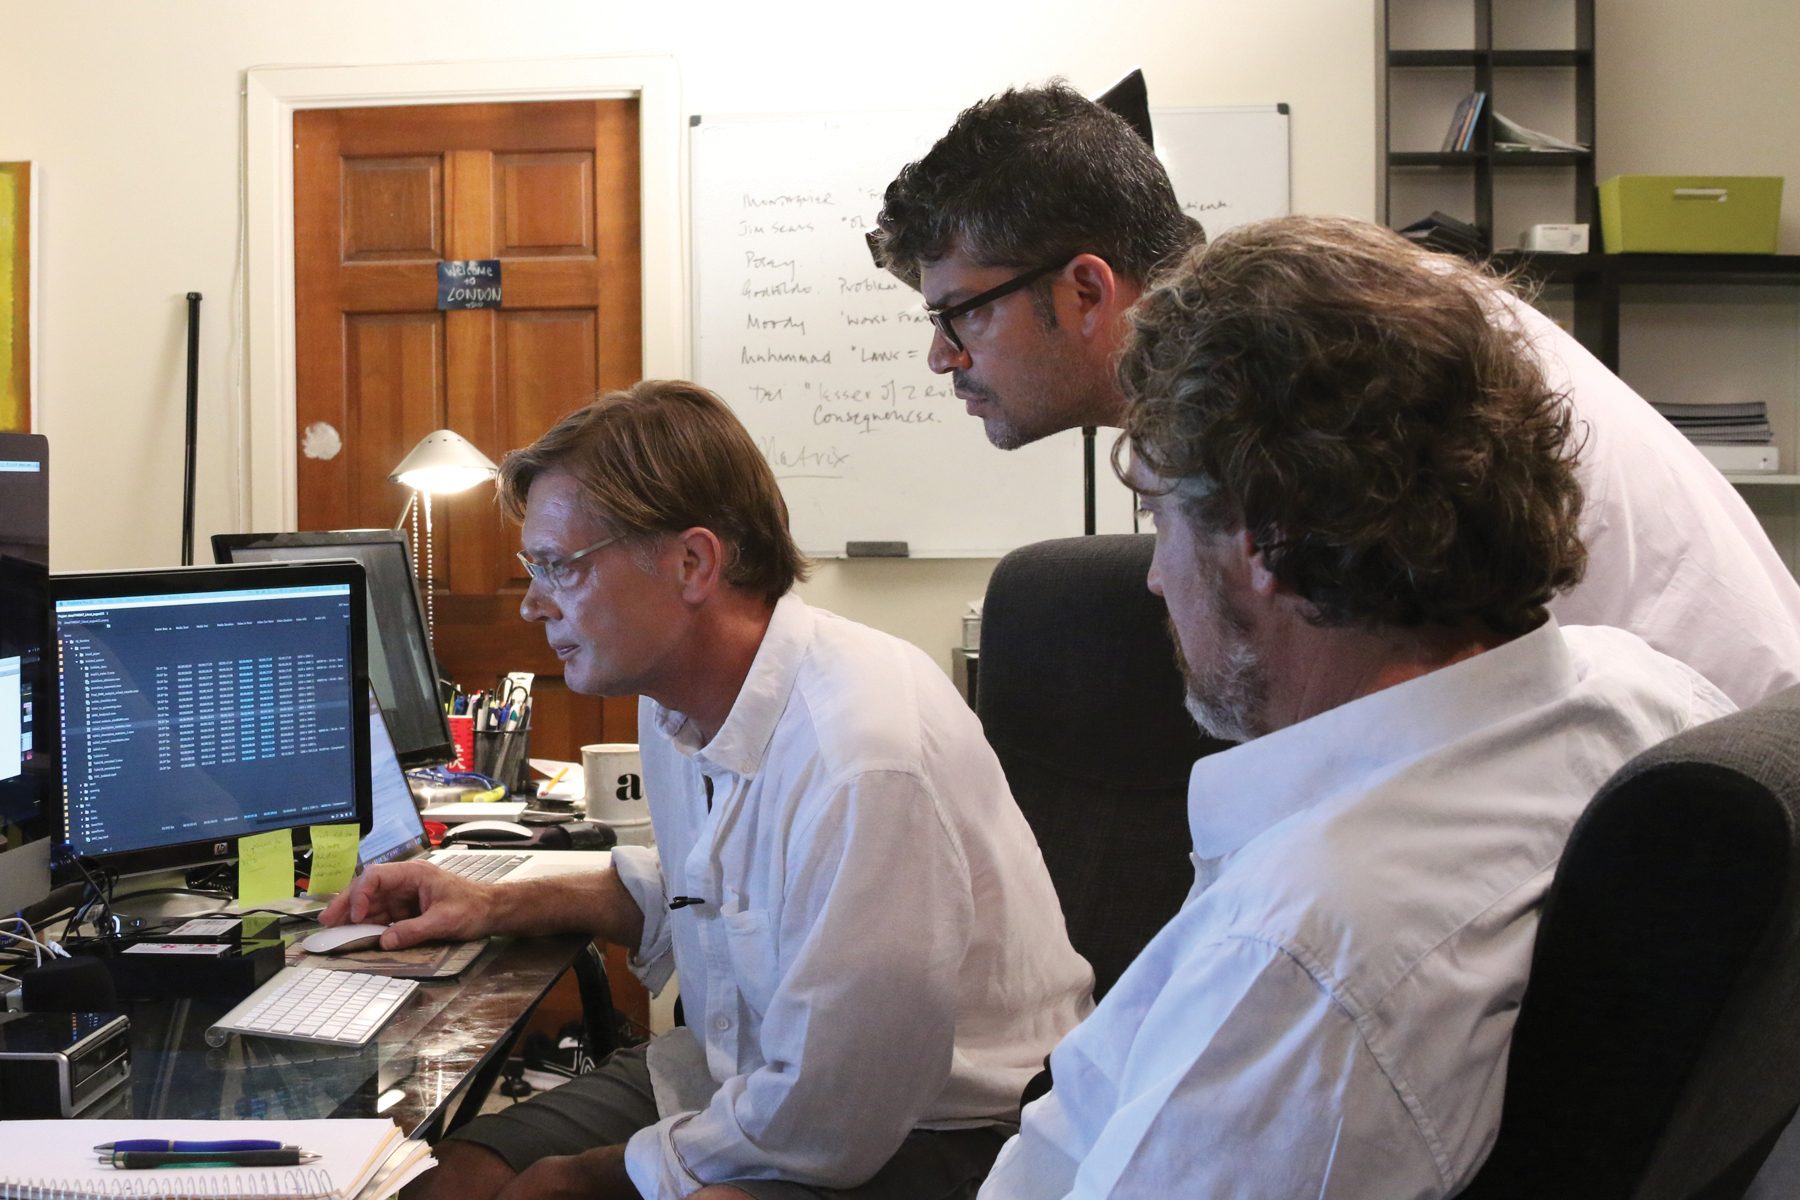 """Director Andrew Wakefield (left), Editor Brian Burrows (middle) and Producer Del Bigtree (Right) review the data from the Centers for Disease Control and Prevention autism/MMR study. Location and date not specified 